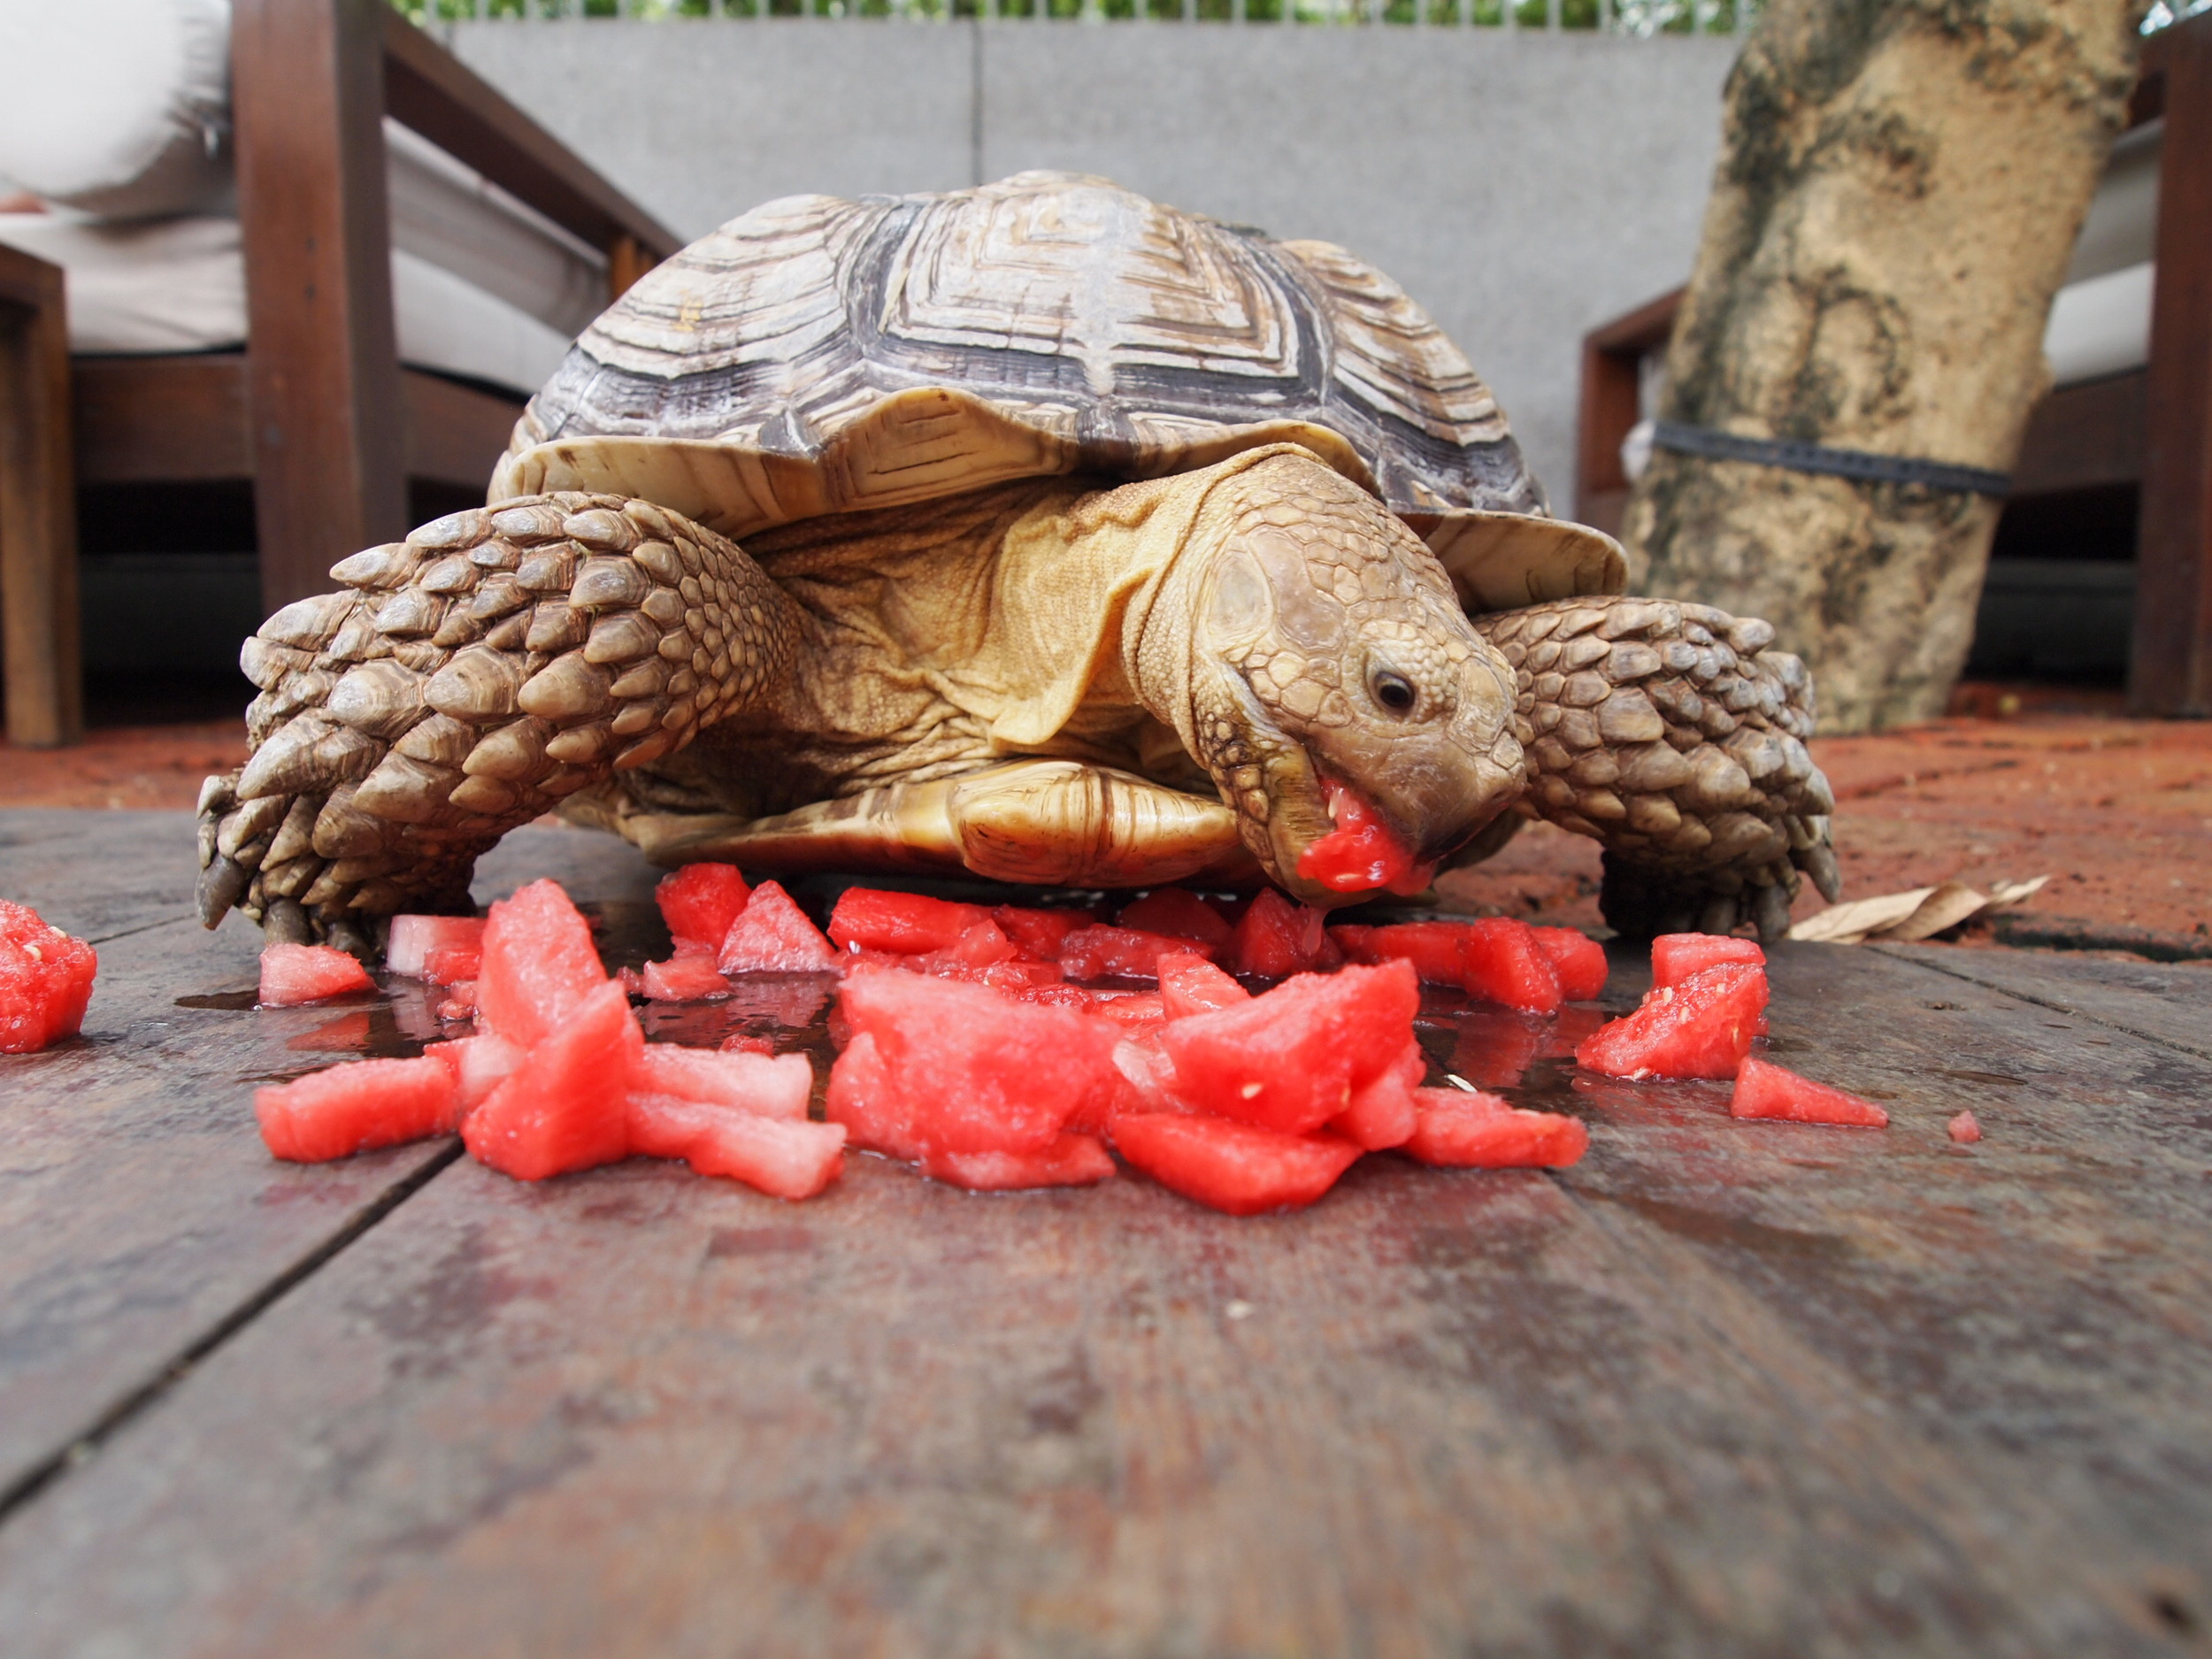 The resident turtle {who LOVES watermelon}